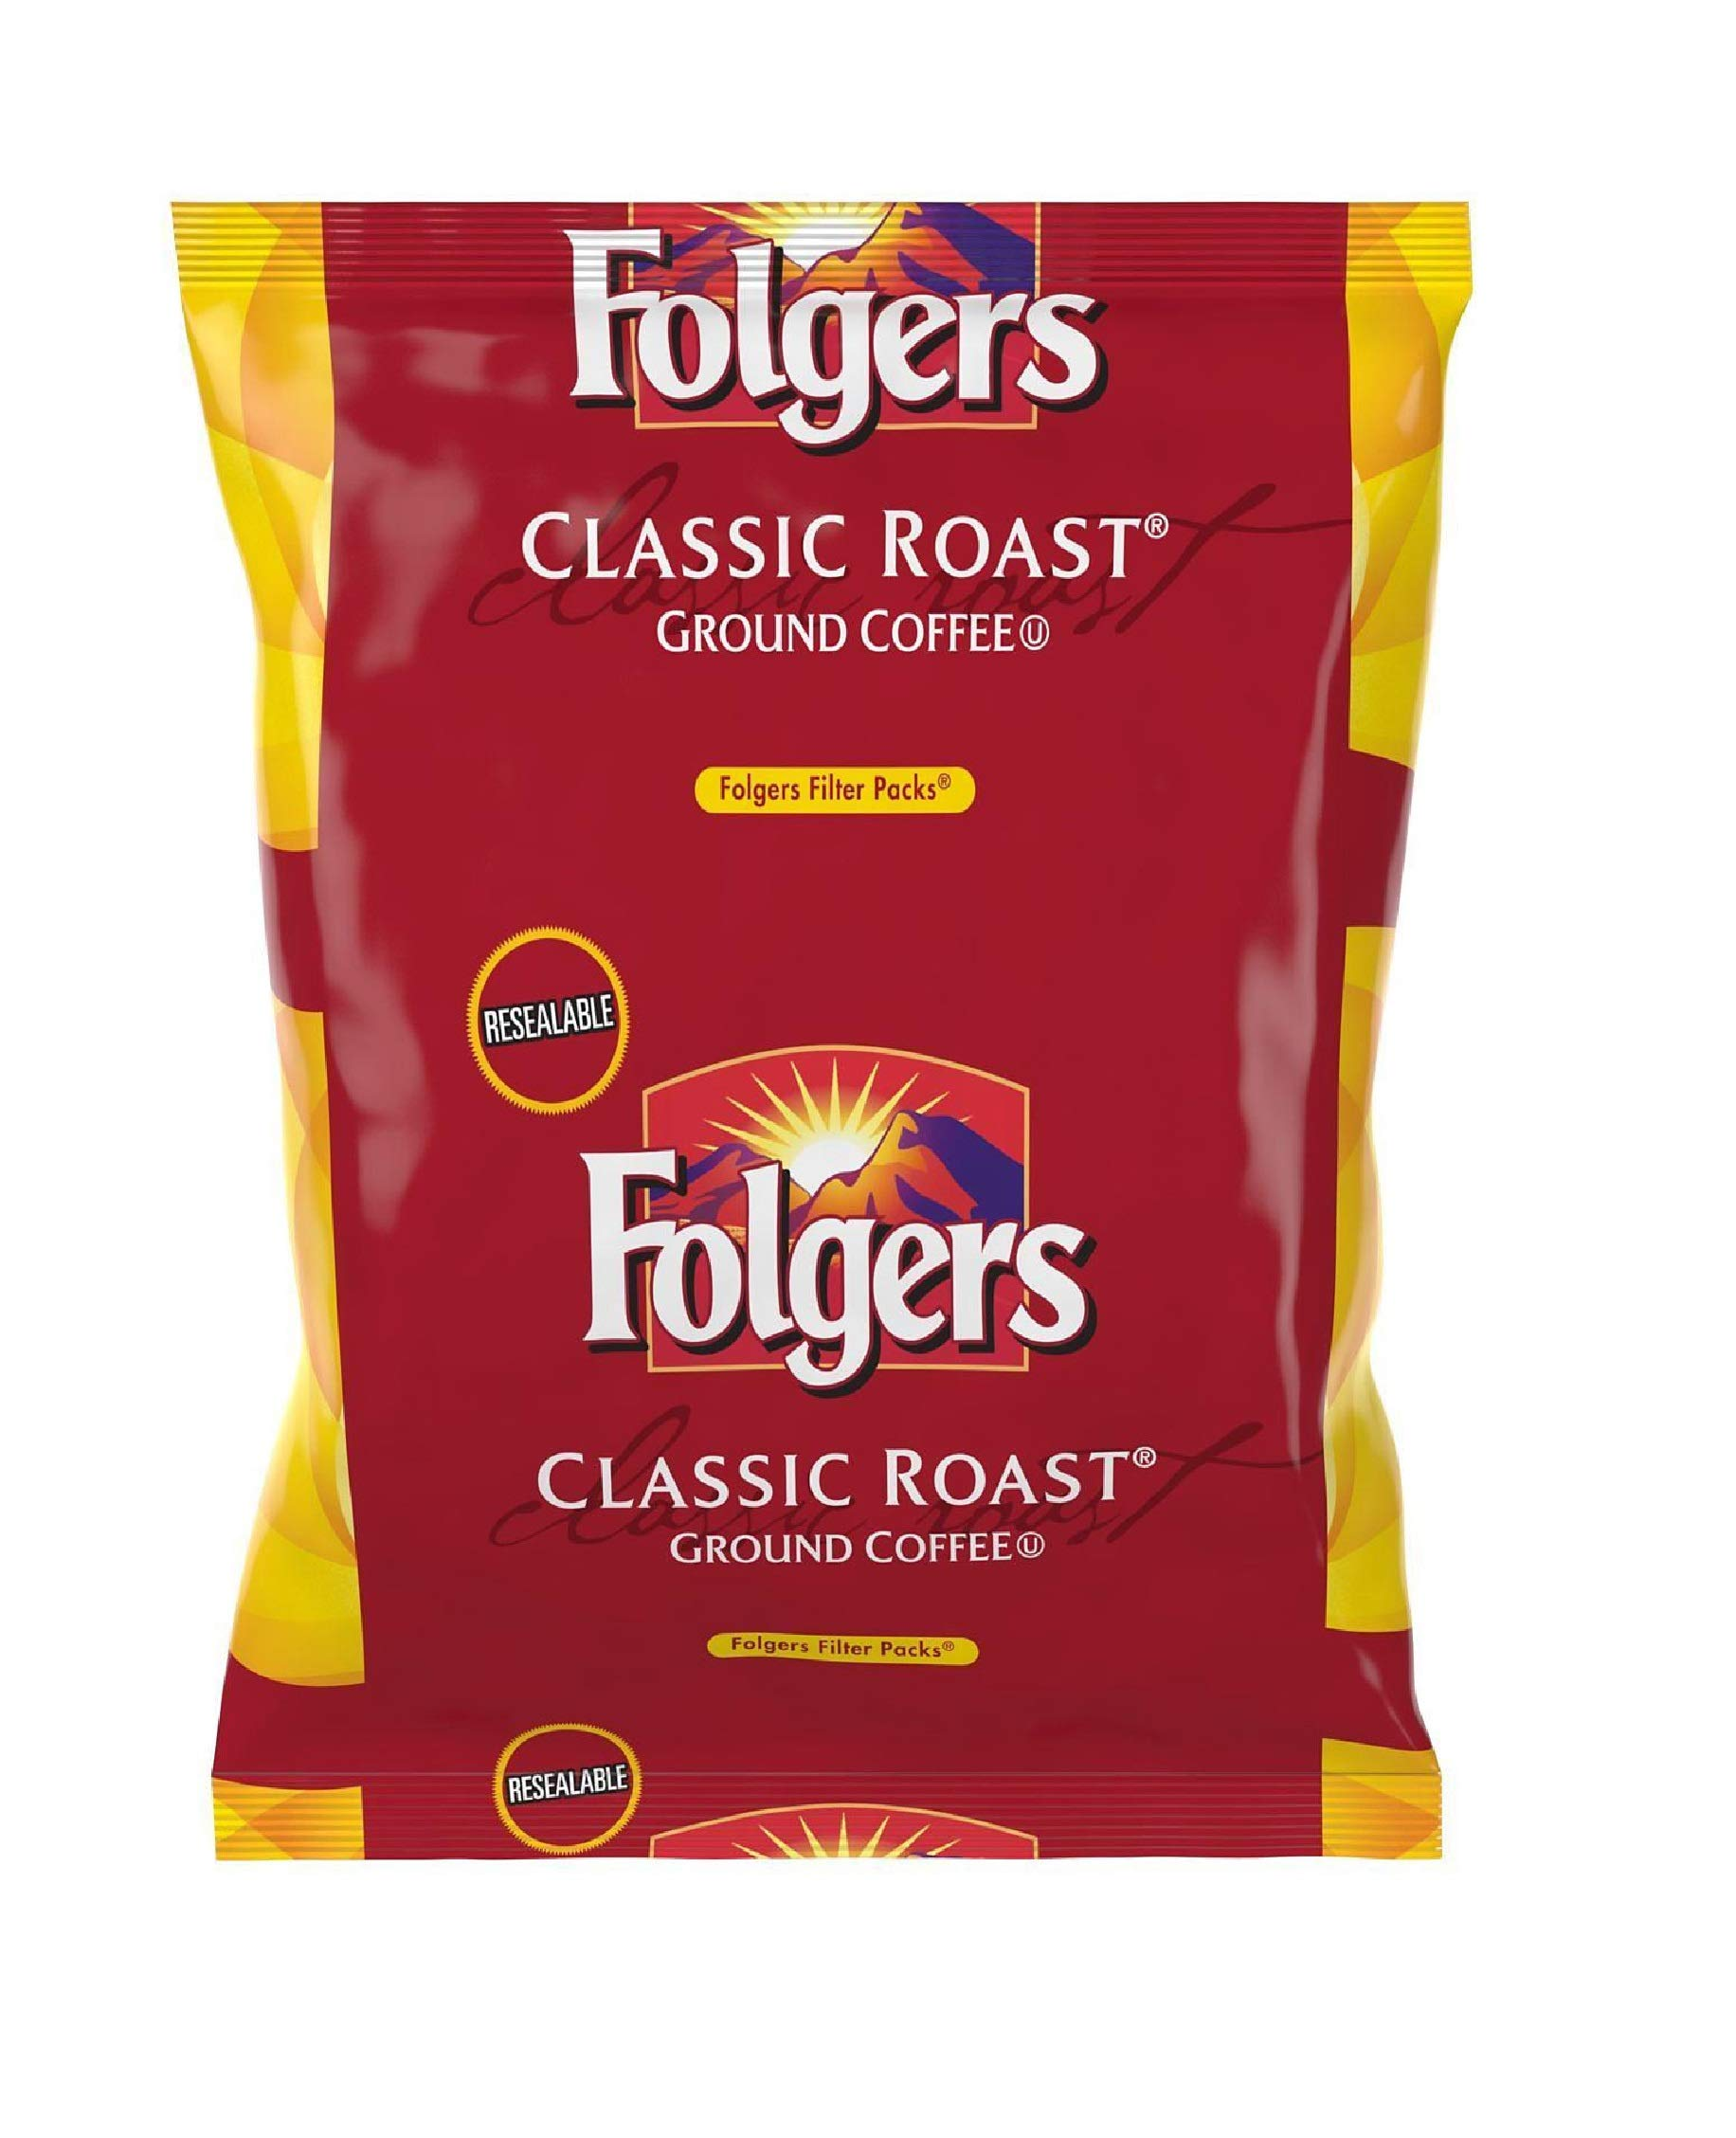 Folgers Classic Roast Filter Packs, Premeasured Ground Coffee and Filter in a Single Pouch, 4 Boxes 160 Count